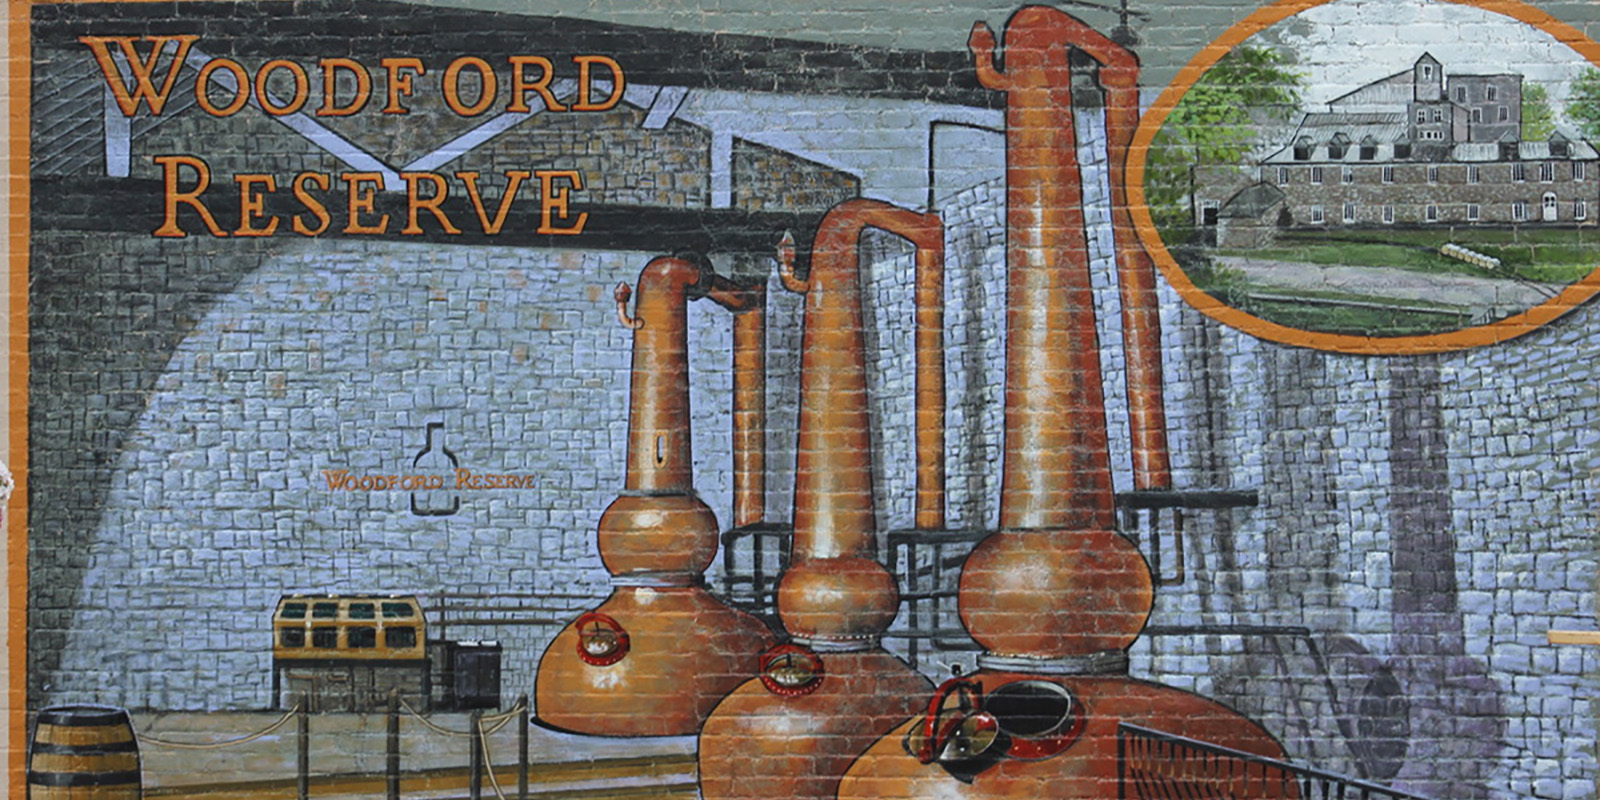 Woodford Reserve Mural